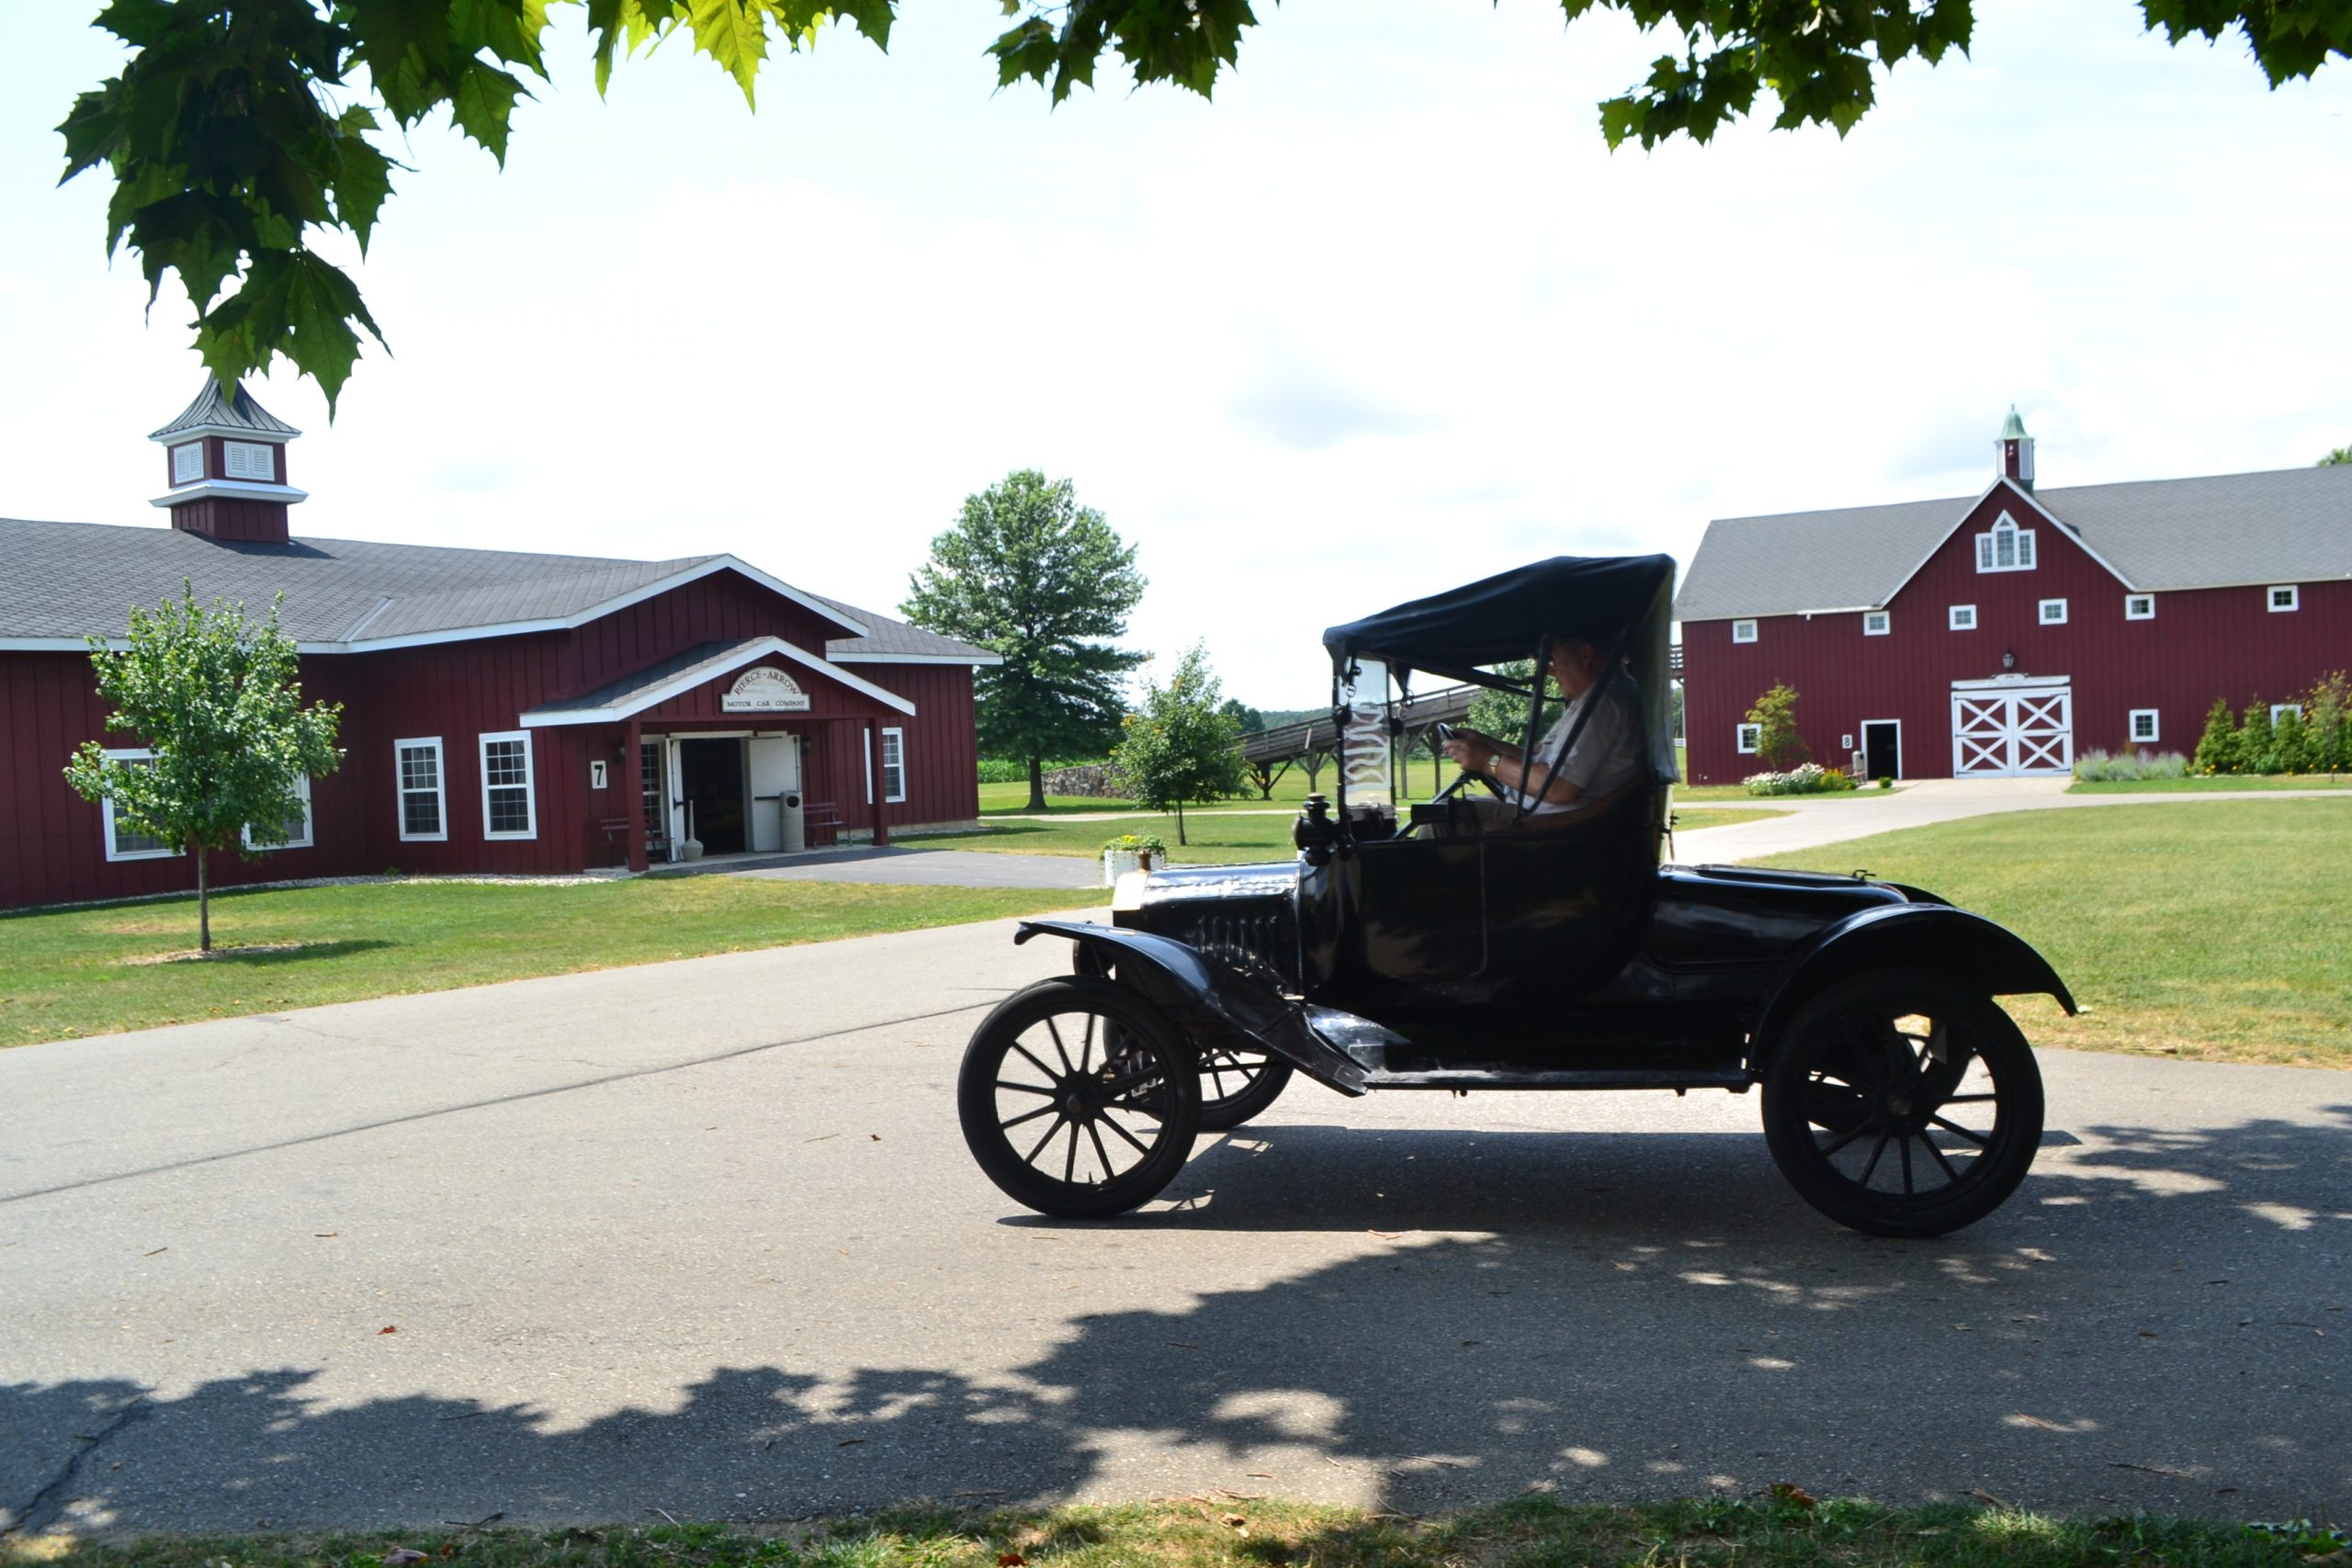 Ford Model T driving